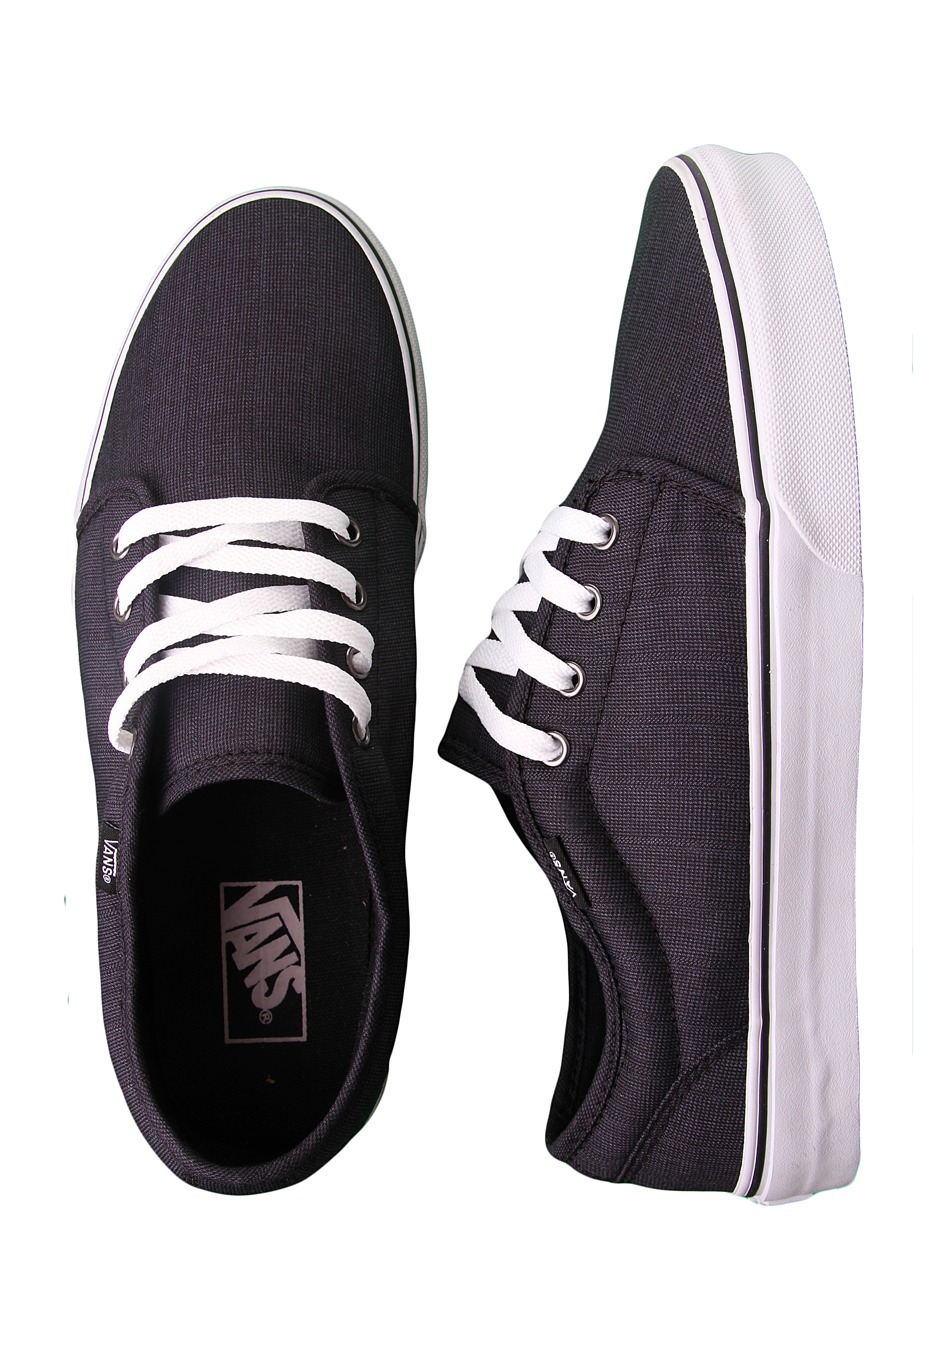 Vans - 106 Vulcanized Suiting Black - Shoes - Impericon.com Worldwide a84b635f0